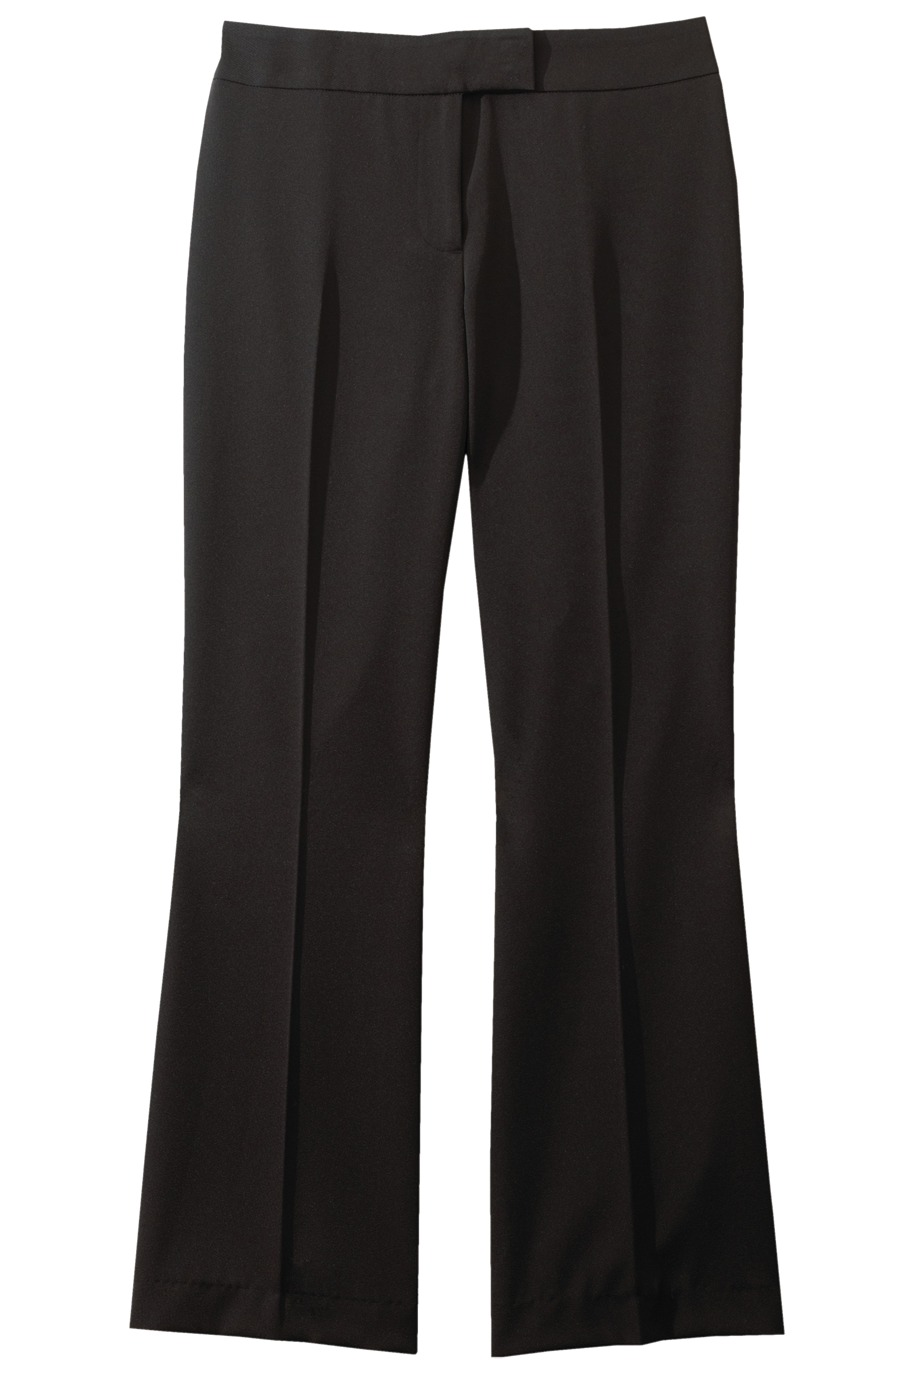 Edwards Garment 8550 - Women's Low Rise Boot Cut Pant